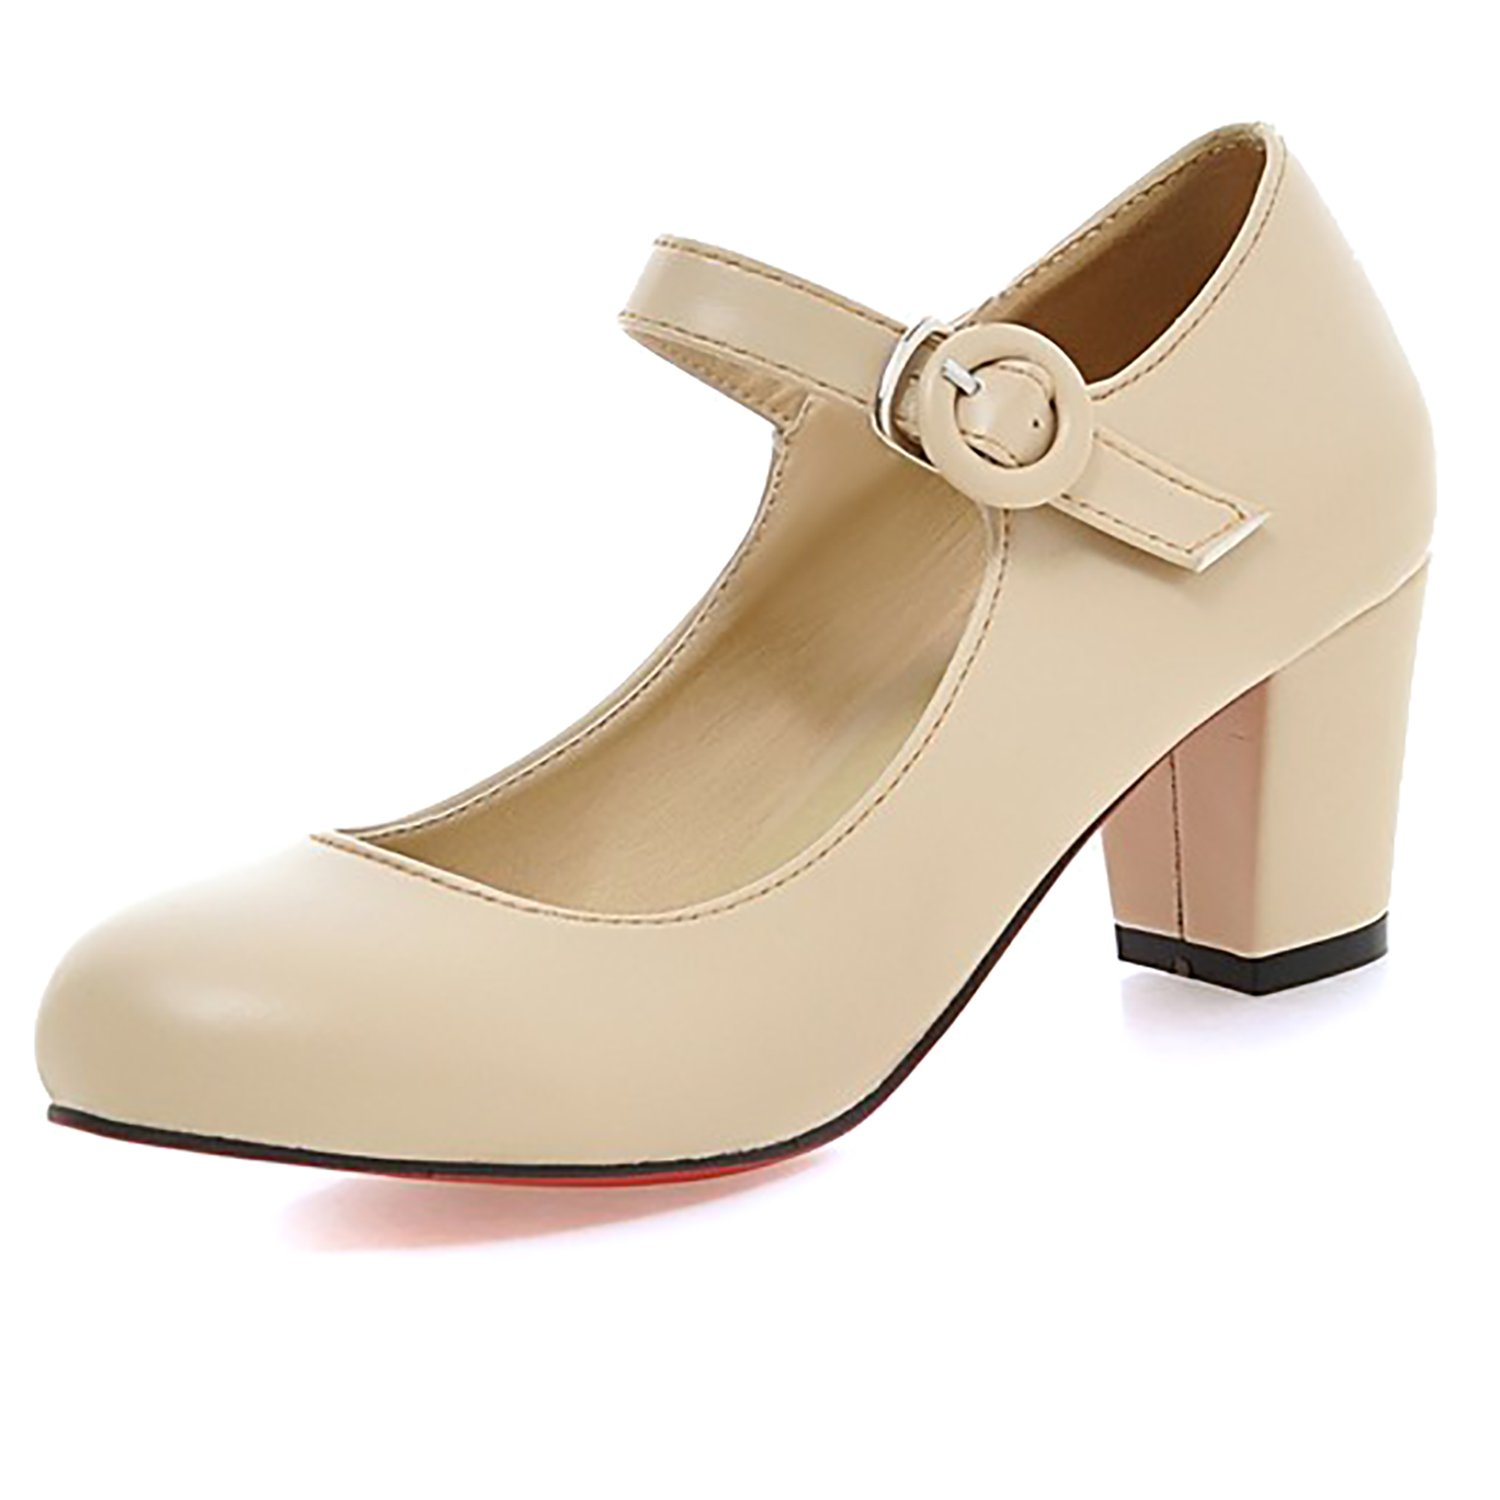 2ba2bae0c63 ODEMA Womens Ladies Mid Block Heel Mary Jane Office Work Formal Strap Dolly  Shoes Size Beige  Amazon.co.uk  Shoes   Bags